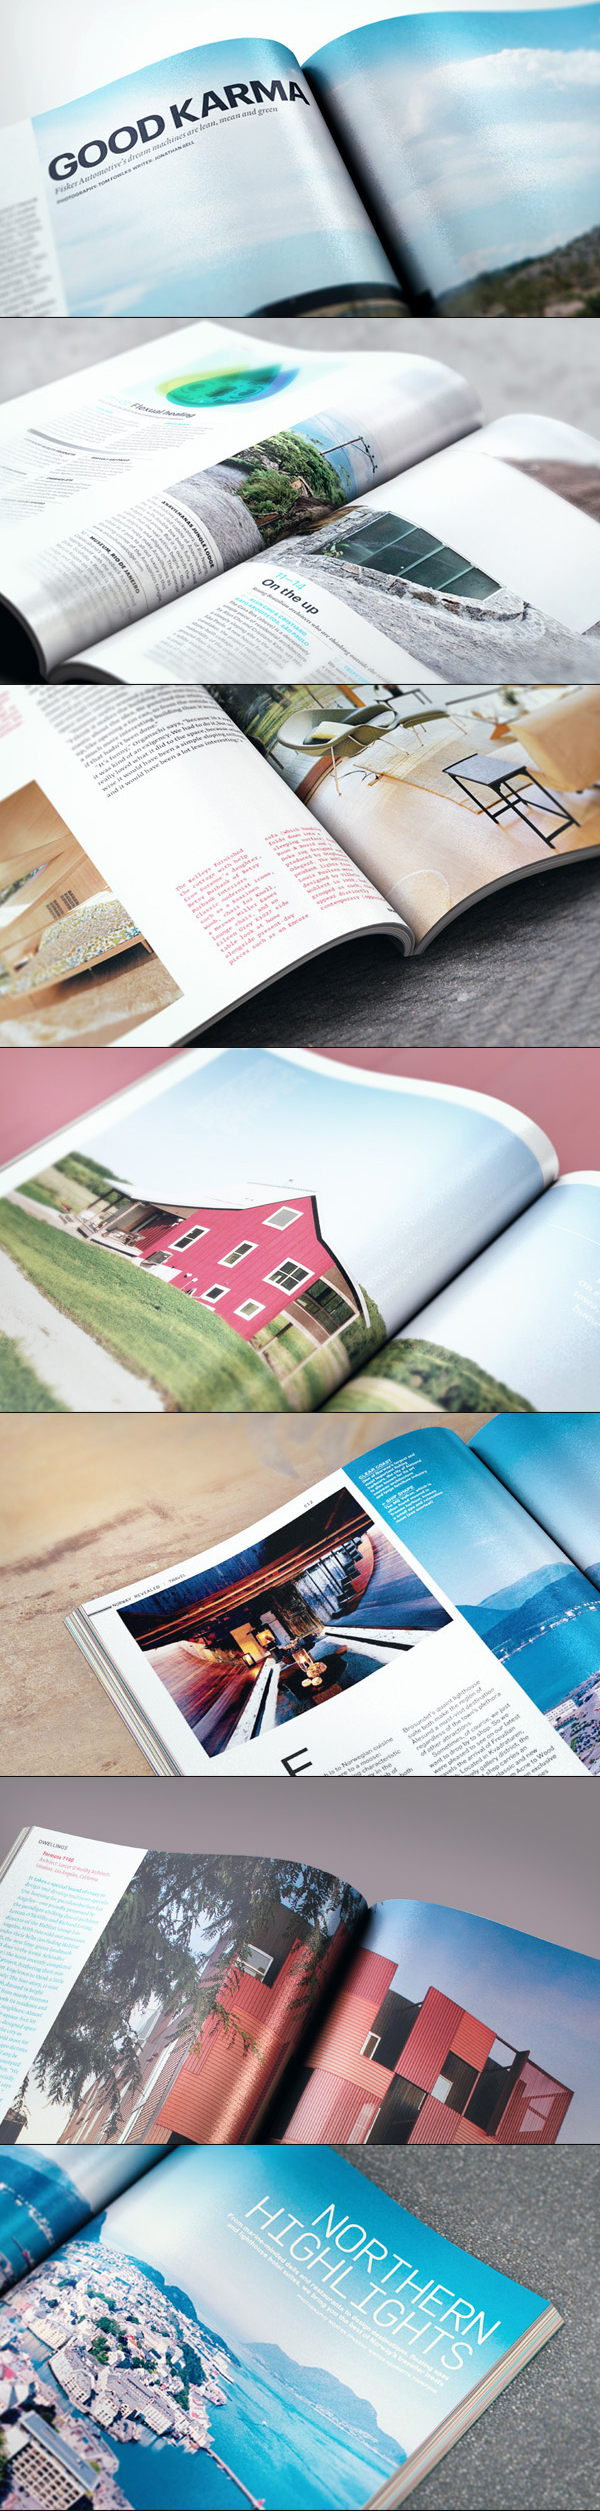 mockup gratuito diseño editorial – interior revista